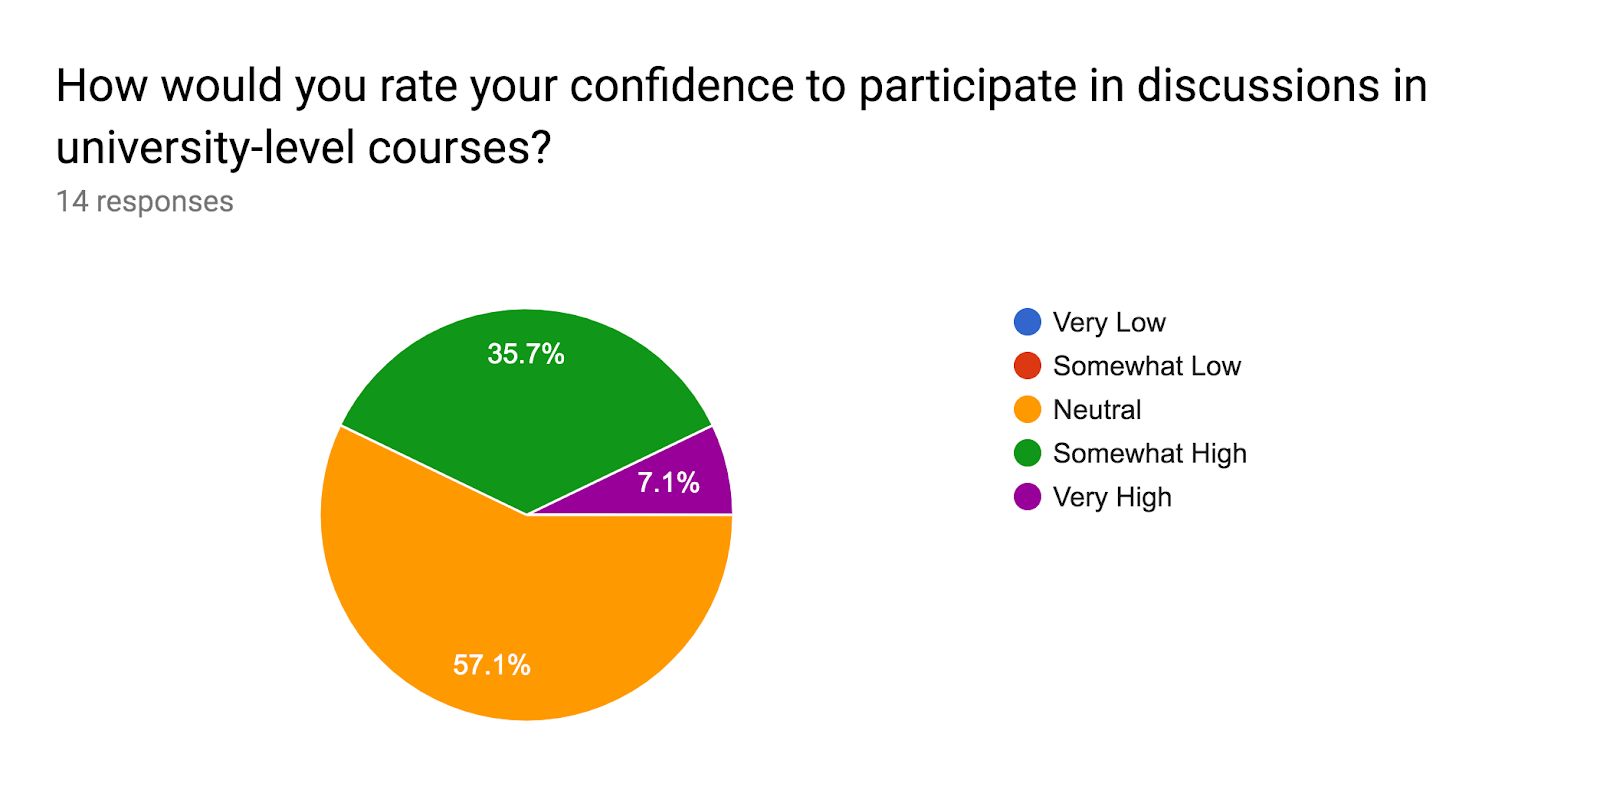 Forms response chart. Question title: How would you rate your confidence to participate in discussions in university-level courses?. Number of responses: 14 responses.